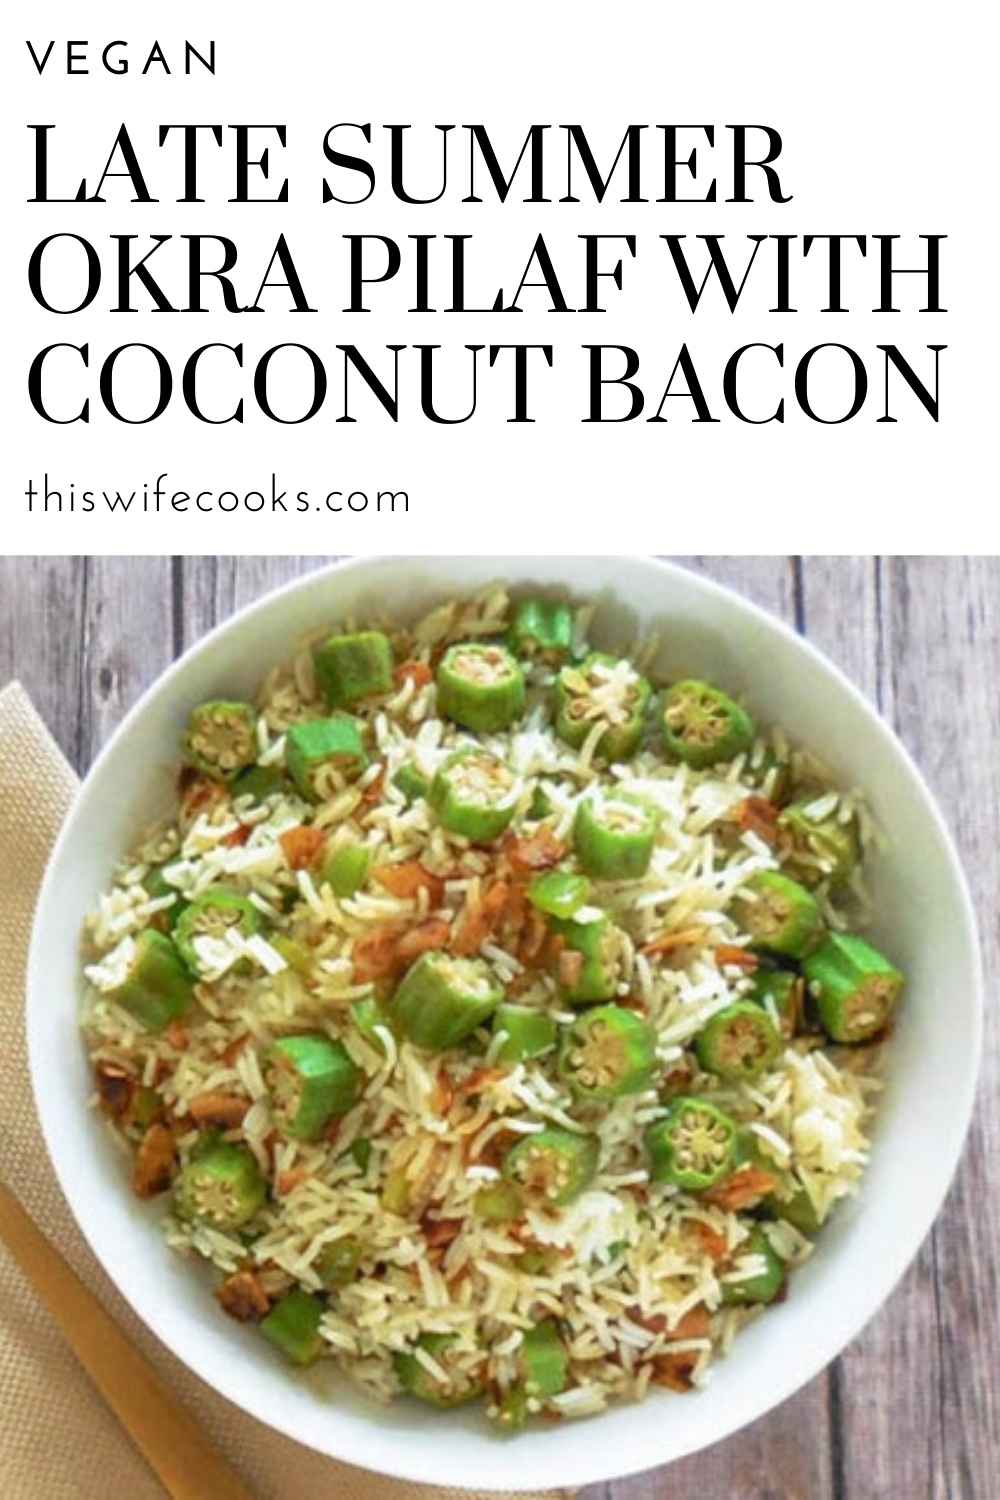 Late Summer Okra Pilaf with Coconut Bacon - Fresh okra tossed witha bold & savory, cayenne-infused rice pilaf then topped with a sweet and smoky homemade coconut bacon. Ready in 30 minutes! via @thiswifecooks